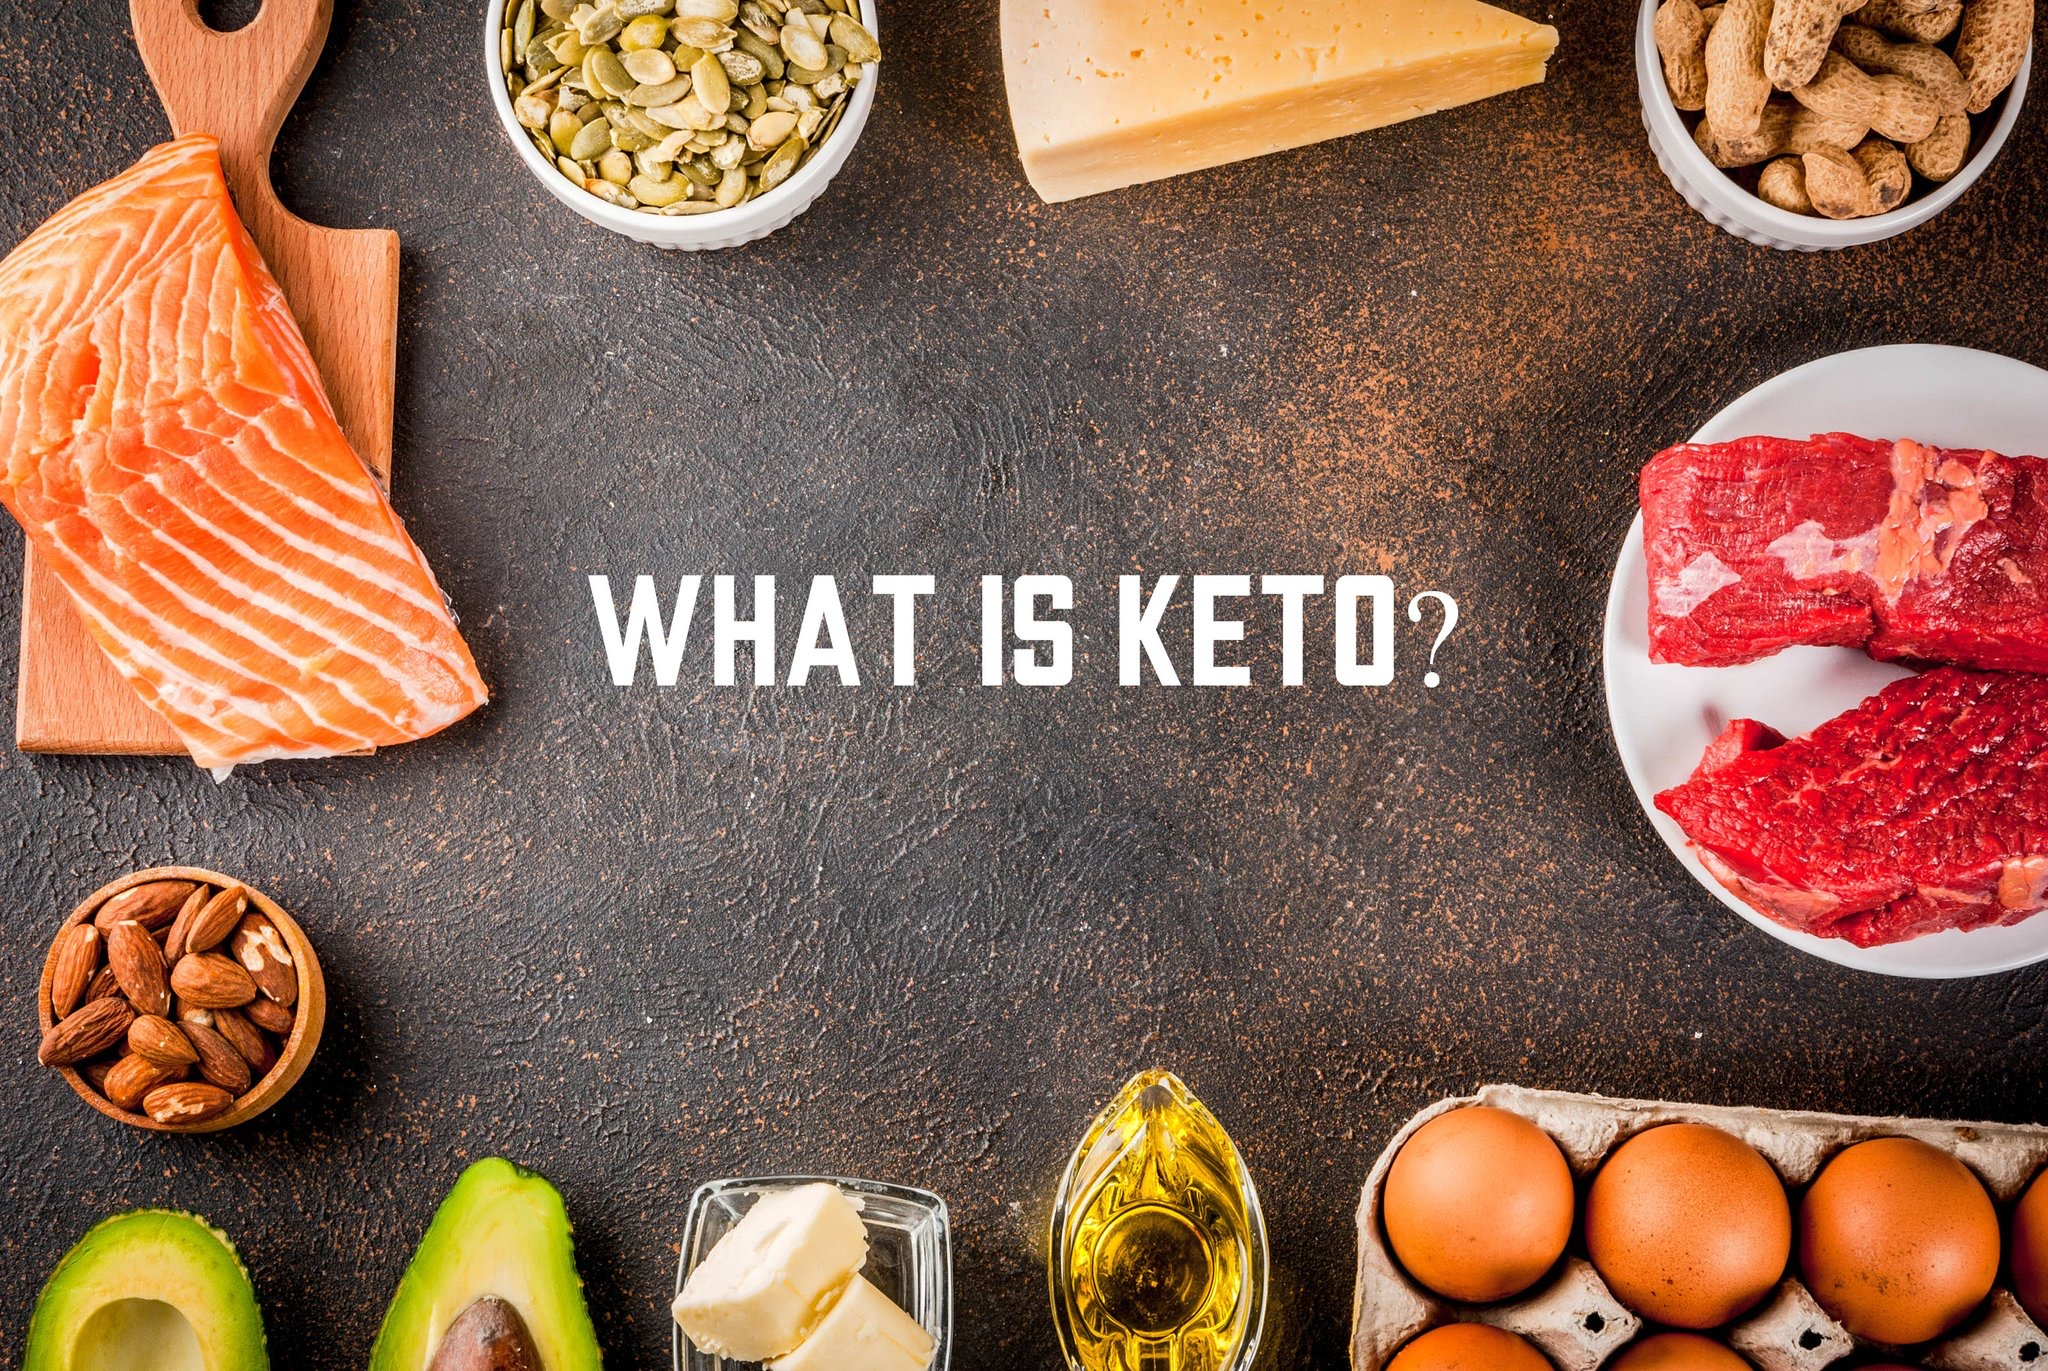 Adobe_stock_what_is_keto_2048x2048.jpg